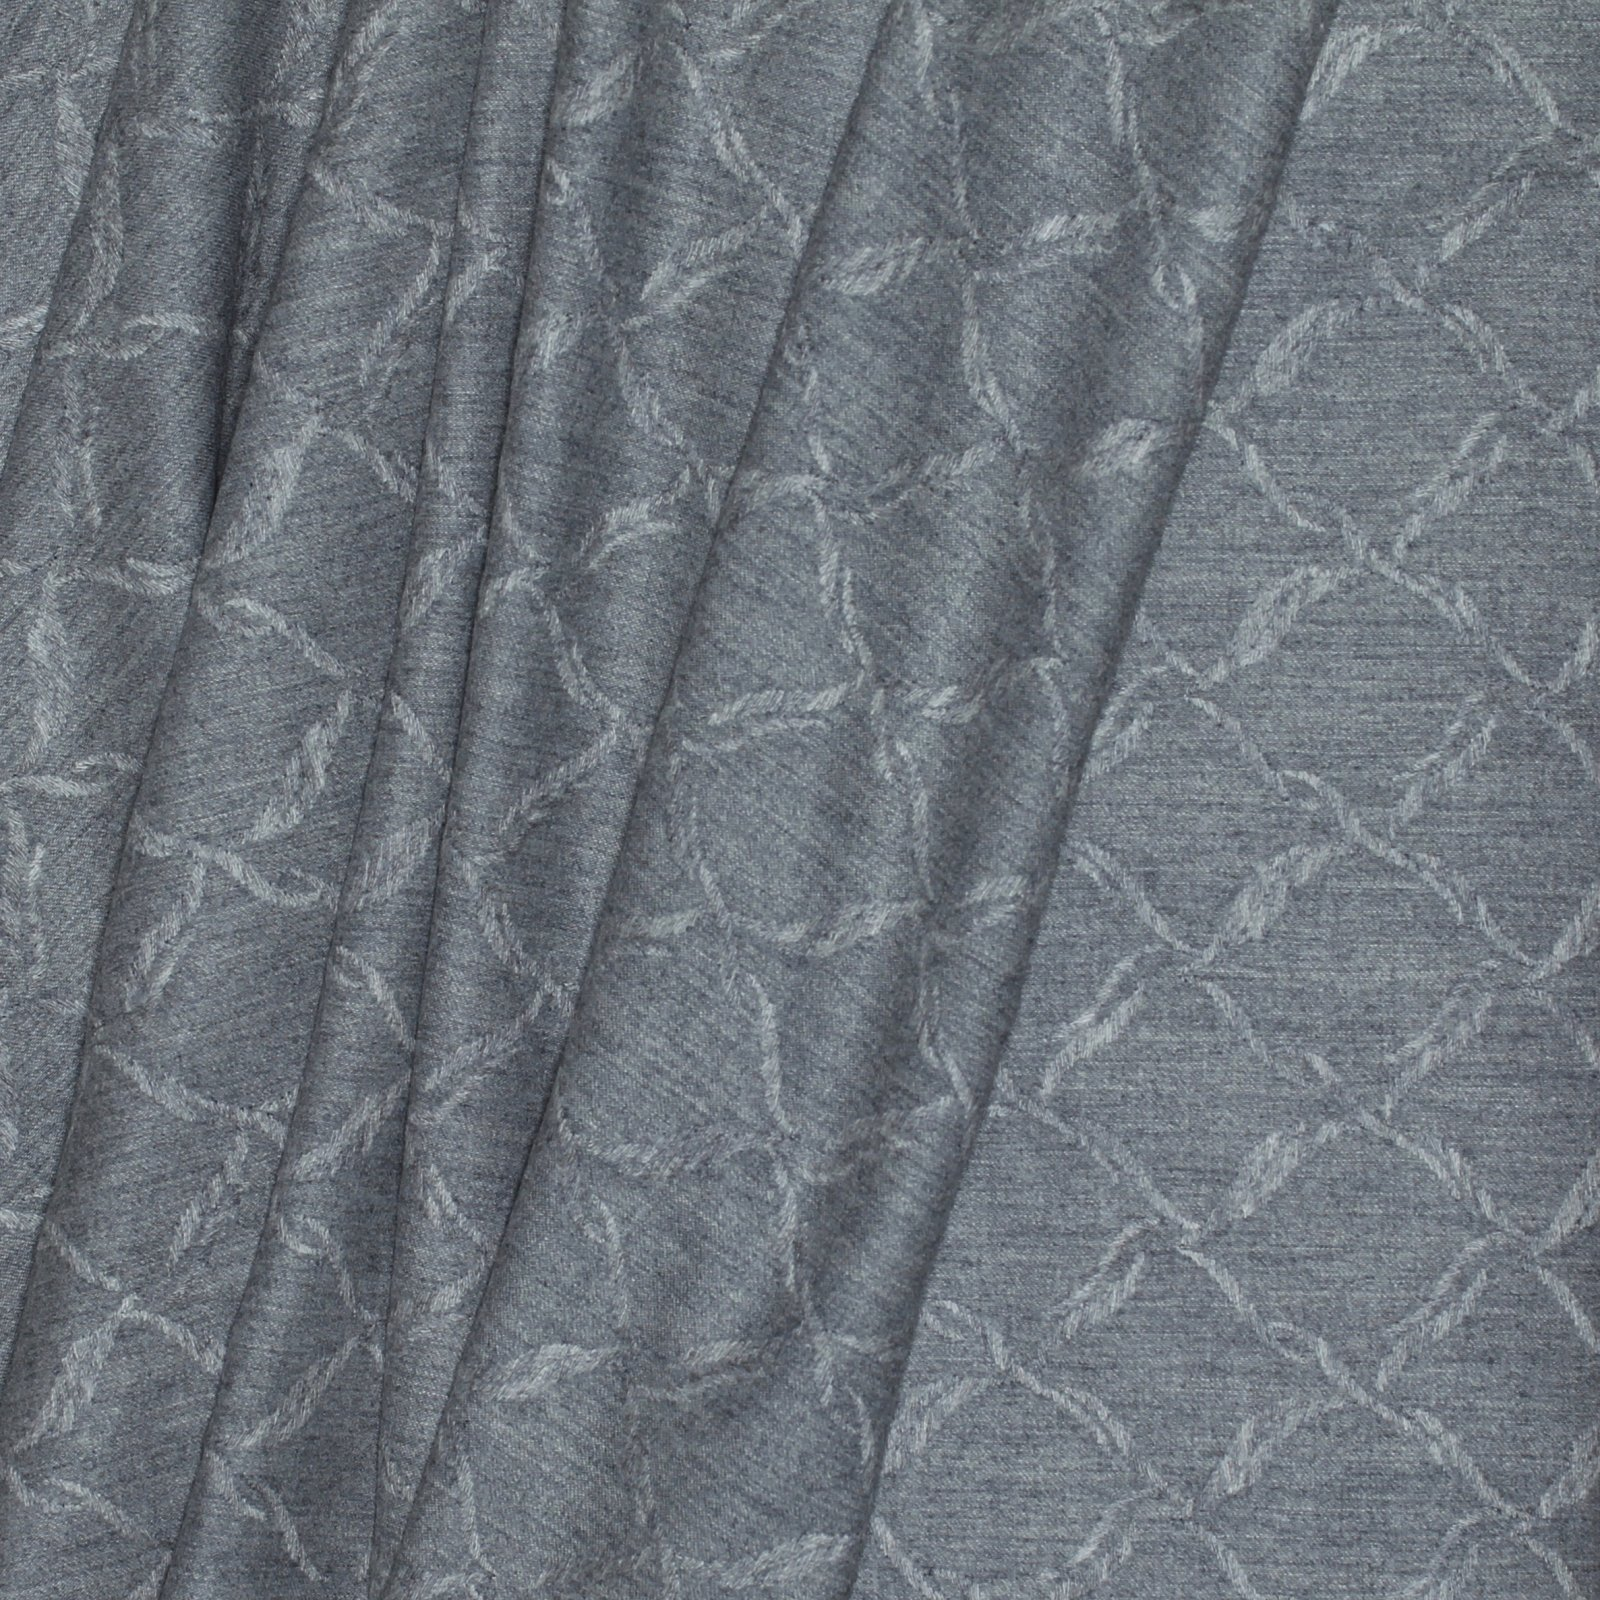 Heathered Grey w/Trupuntoesque Design Italian Wool/Ply Blend